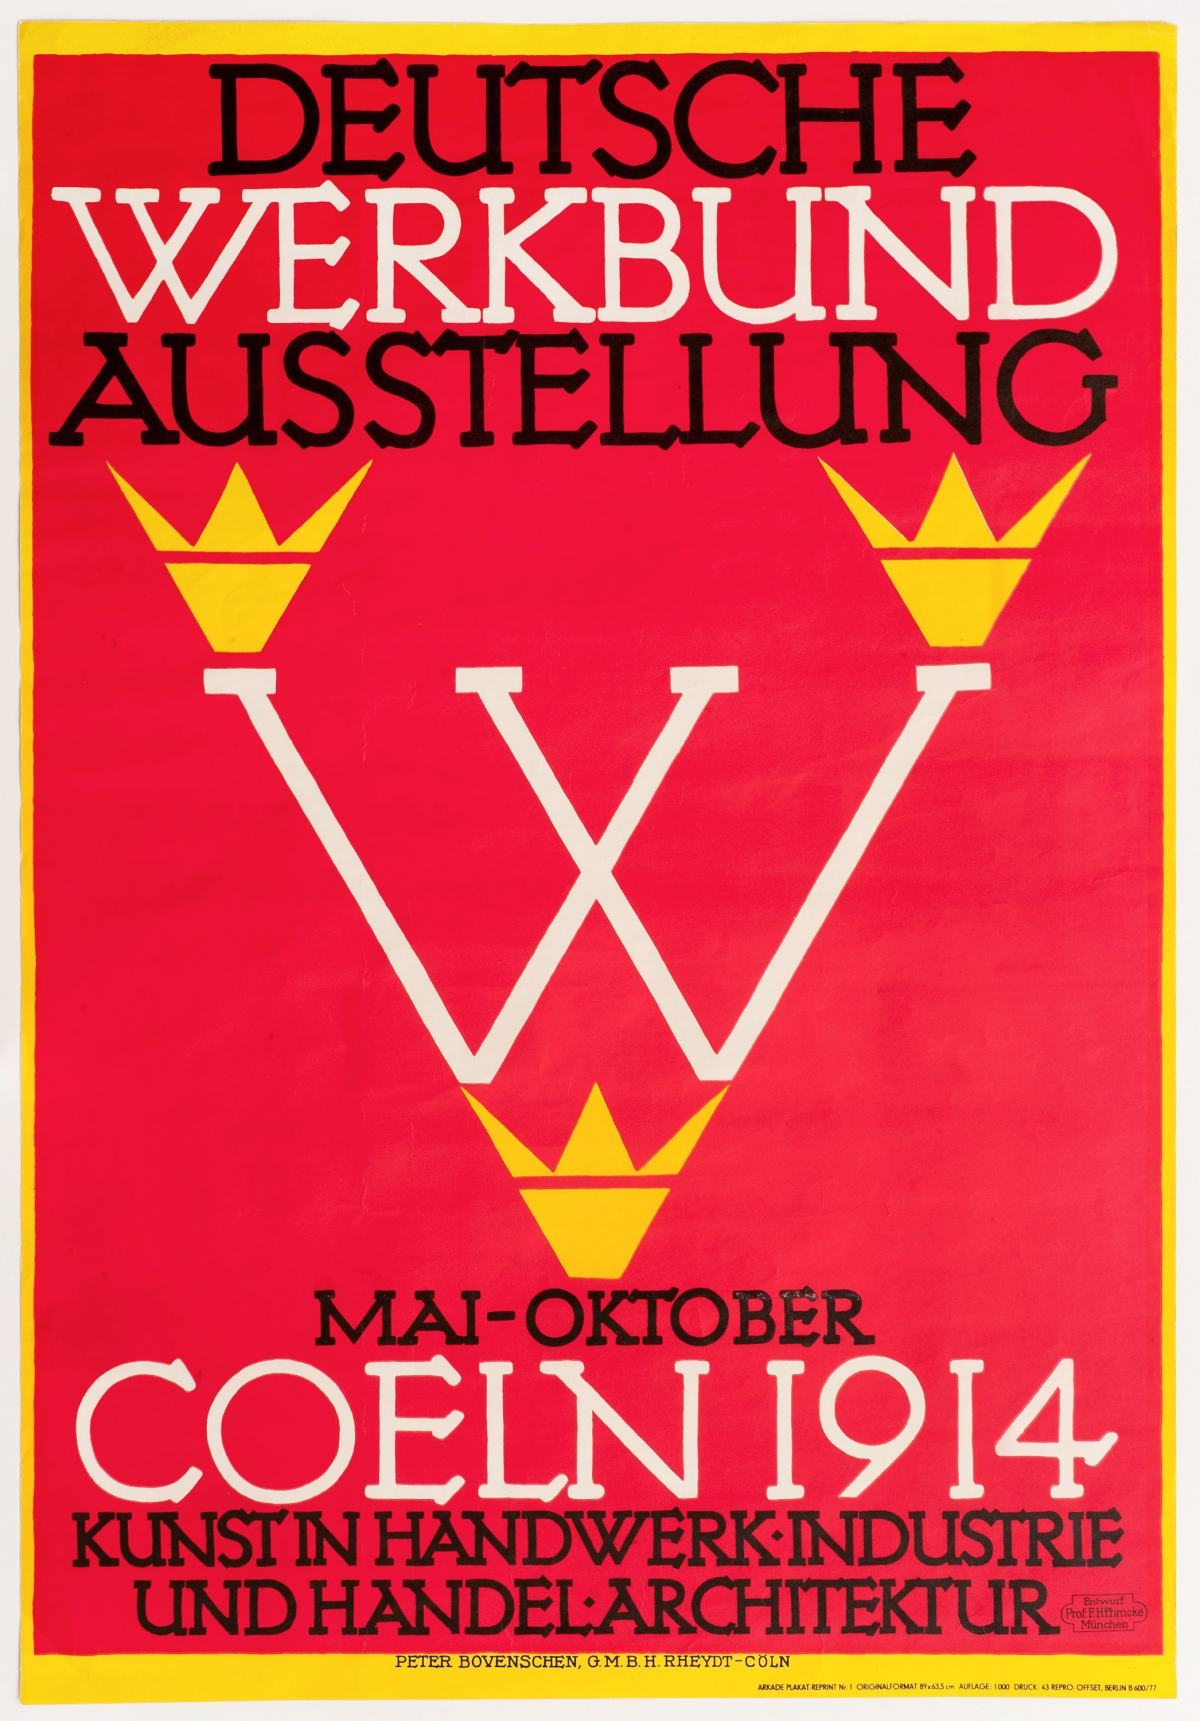 Made in Germany - Plakat Ehmke 1914, Sammlung Werkbundarchiv - Museum der Dinge